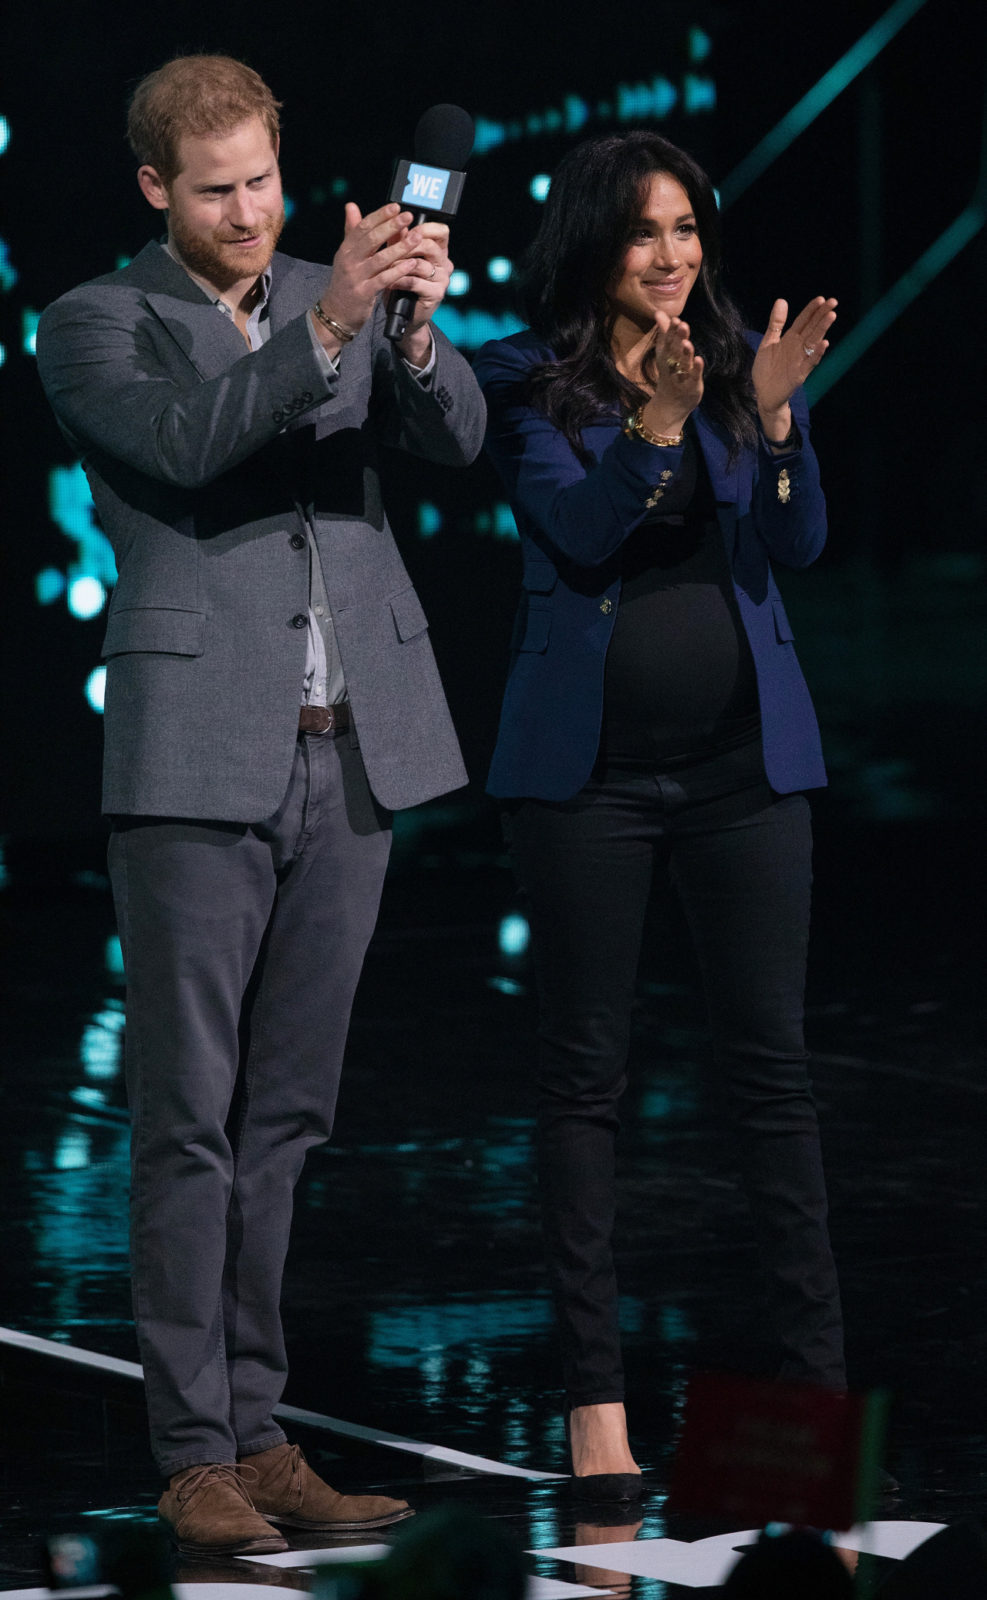 Prince Harry and Meghan on stage at WE Day in London on Wednesday. Source: Getty